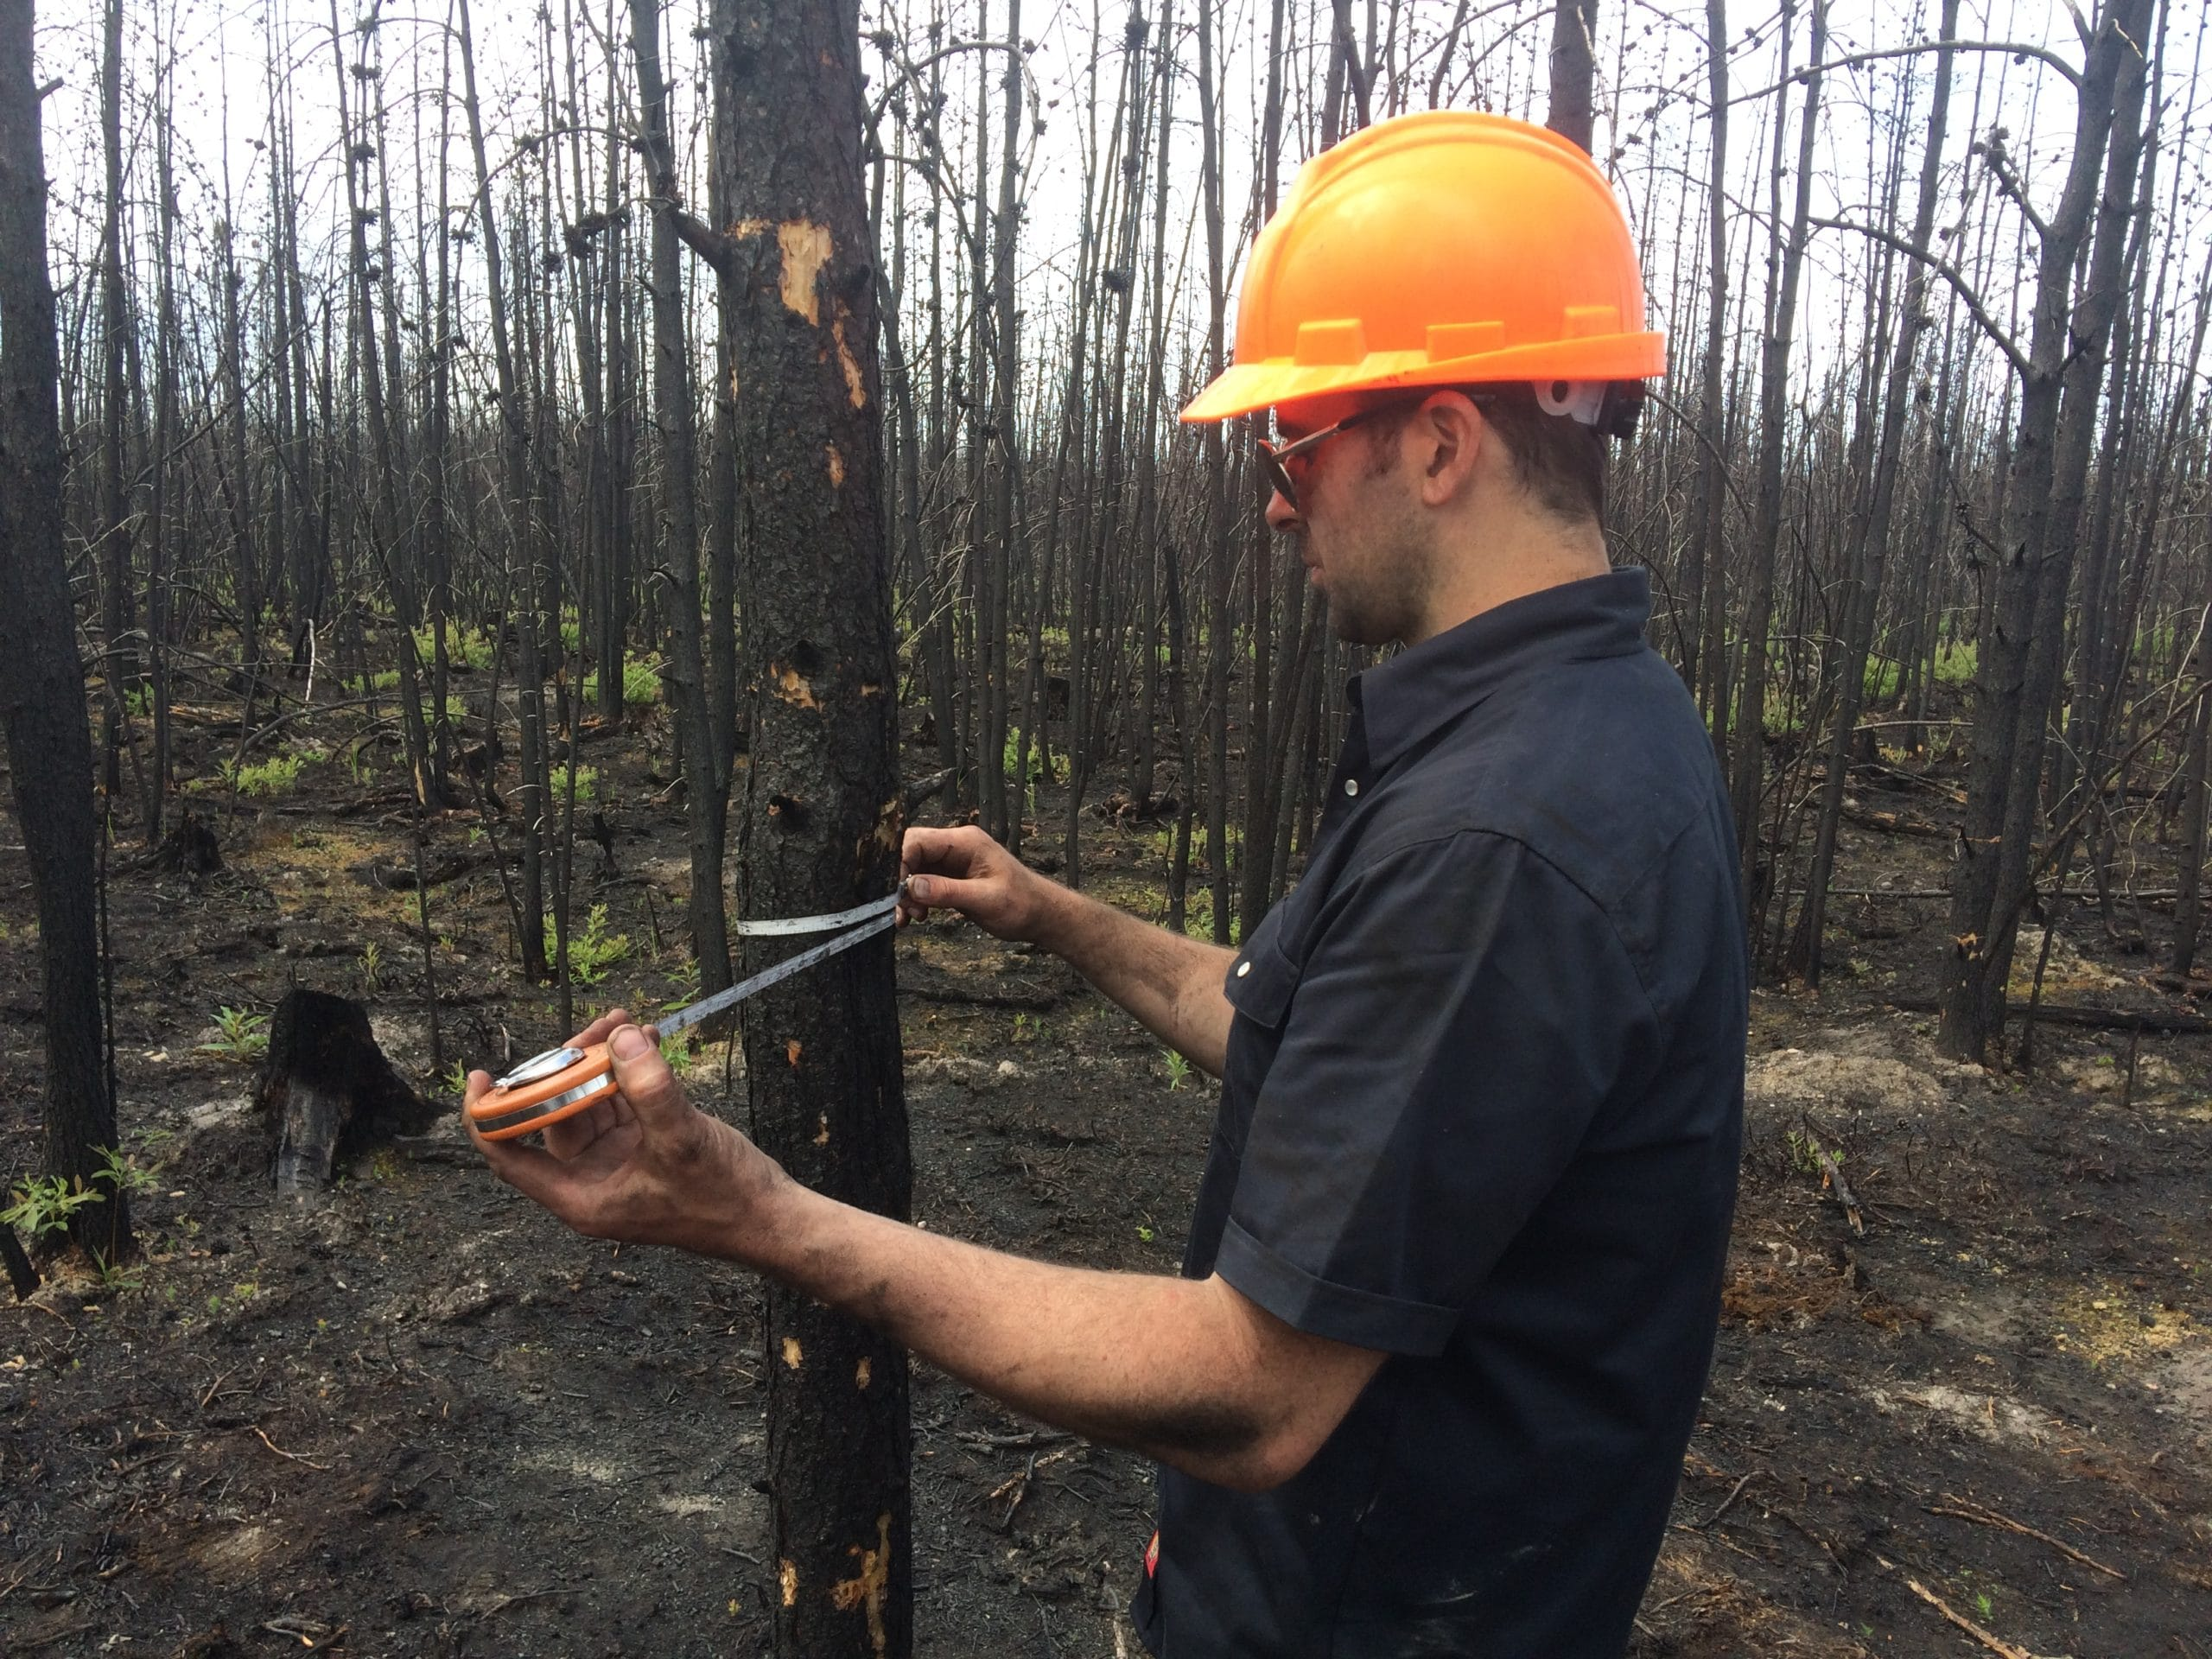 Dr Rogers measuring a tree in a fire-ravaged forest.